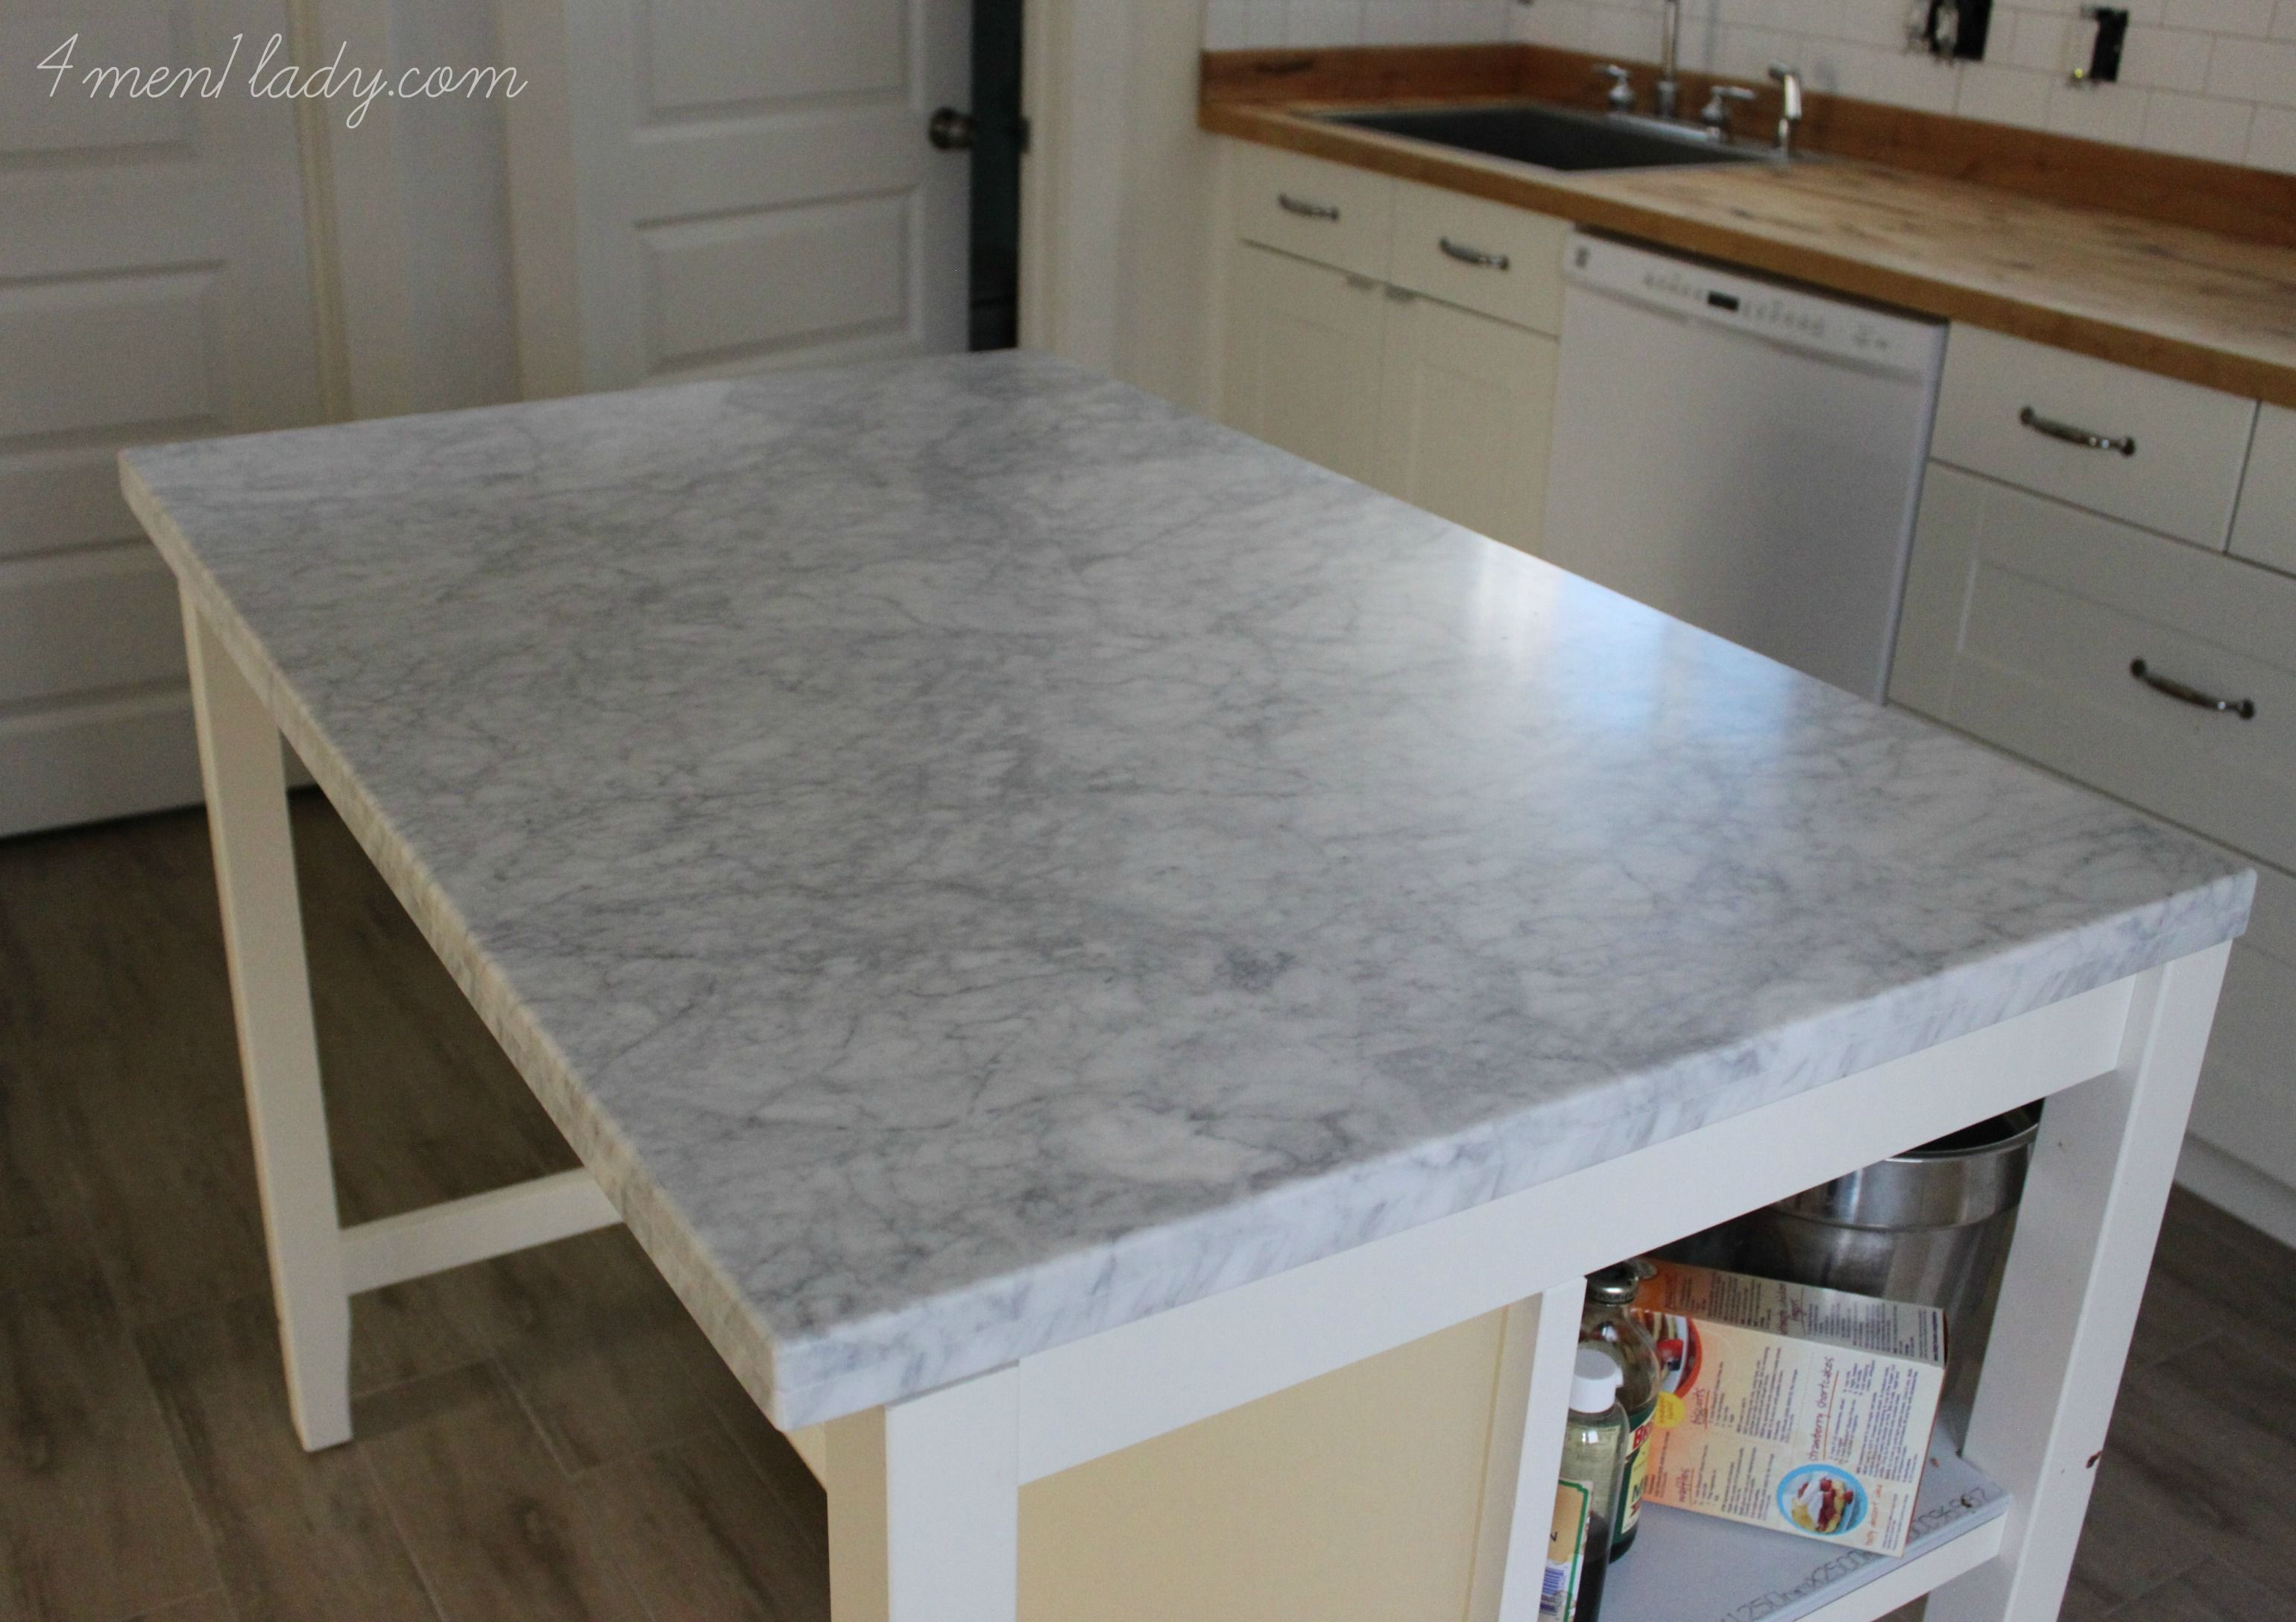 Ikea Stenstorp Kitchen Island Hack Diamonds Ain T Got Nothing On A Beautiful Piece Of Marble